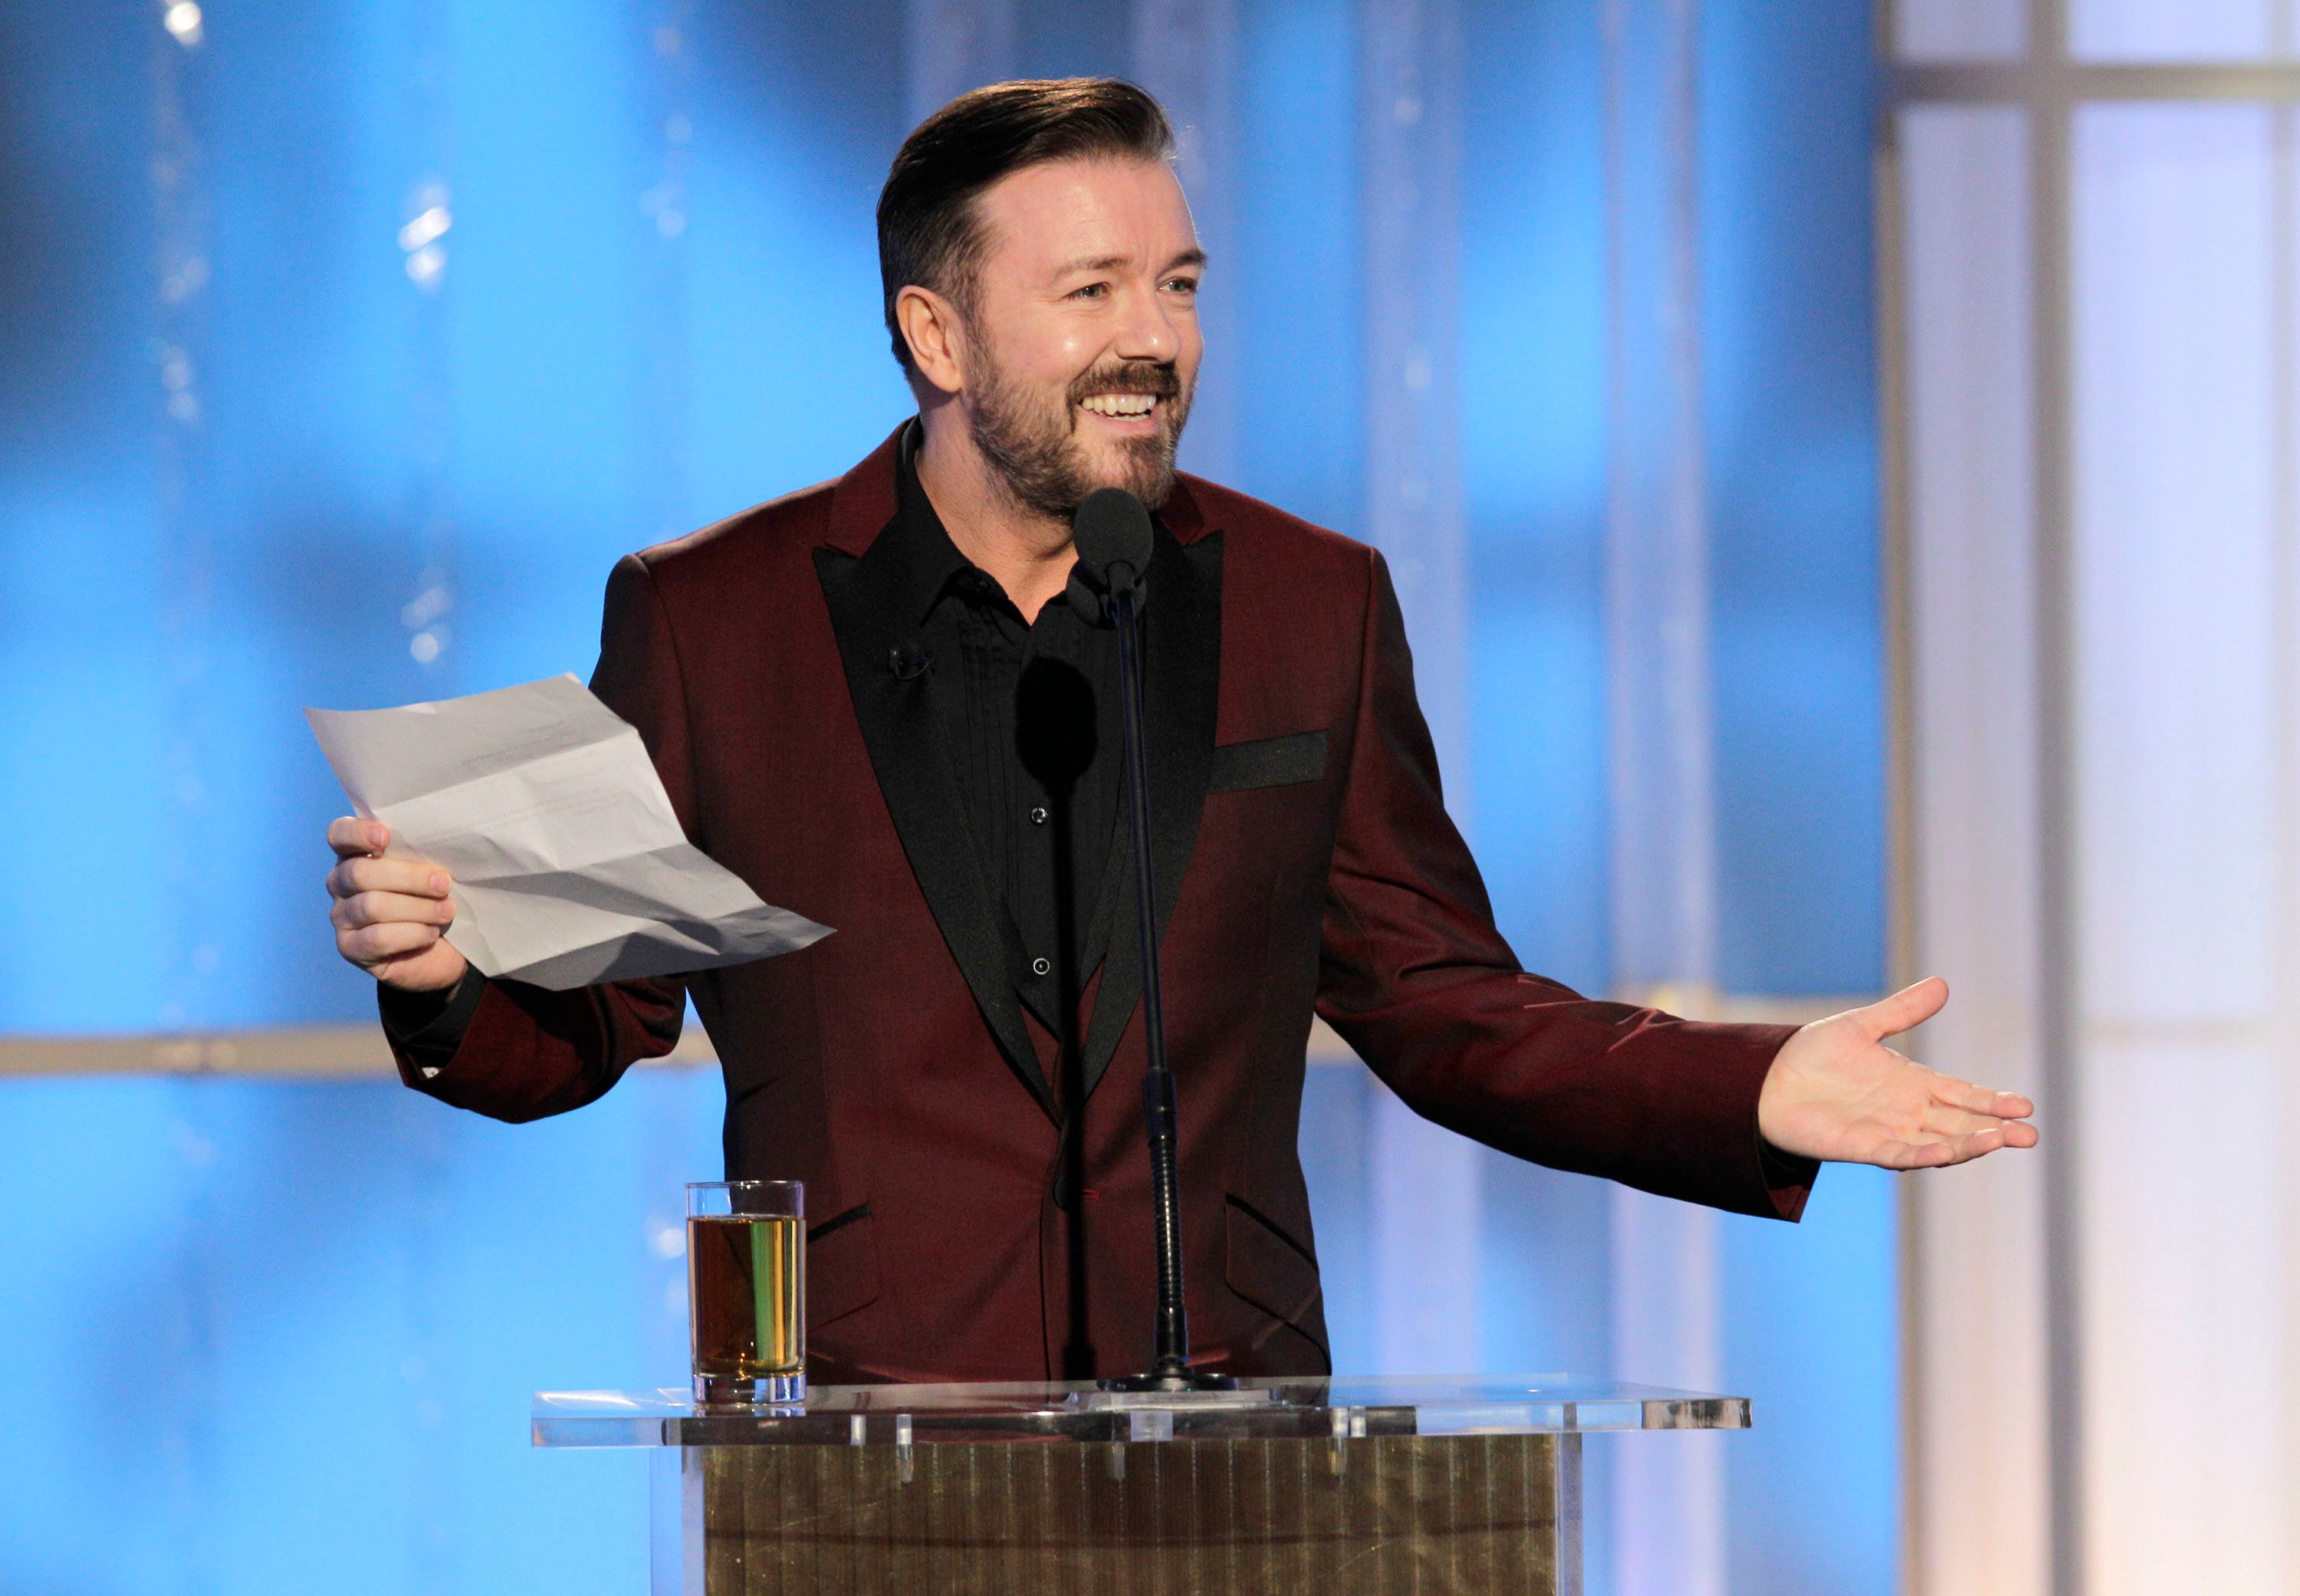 Ricky Gervais Claims He Would Have Joked About Hollywood Harassment Scandal As Host Of Golden